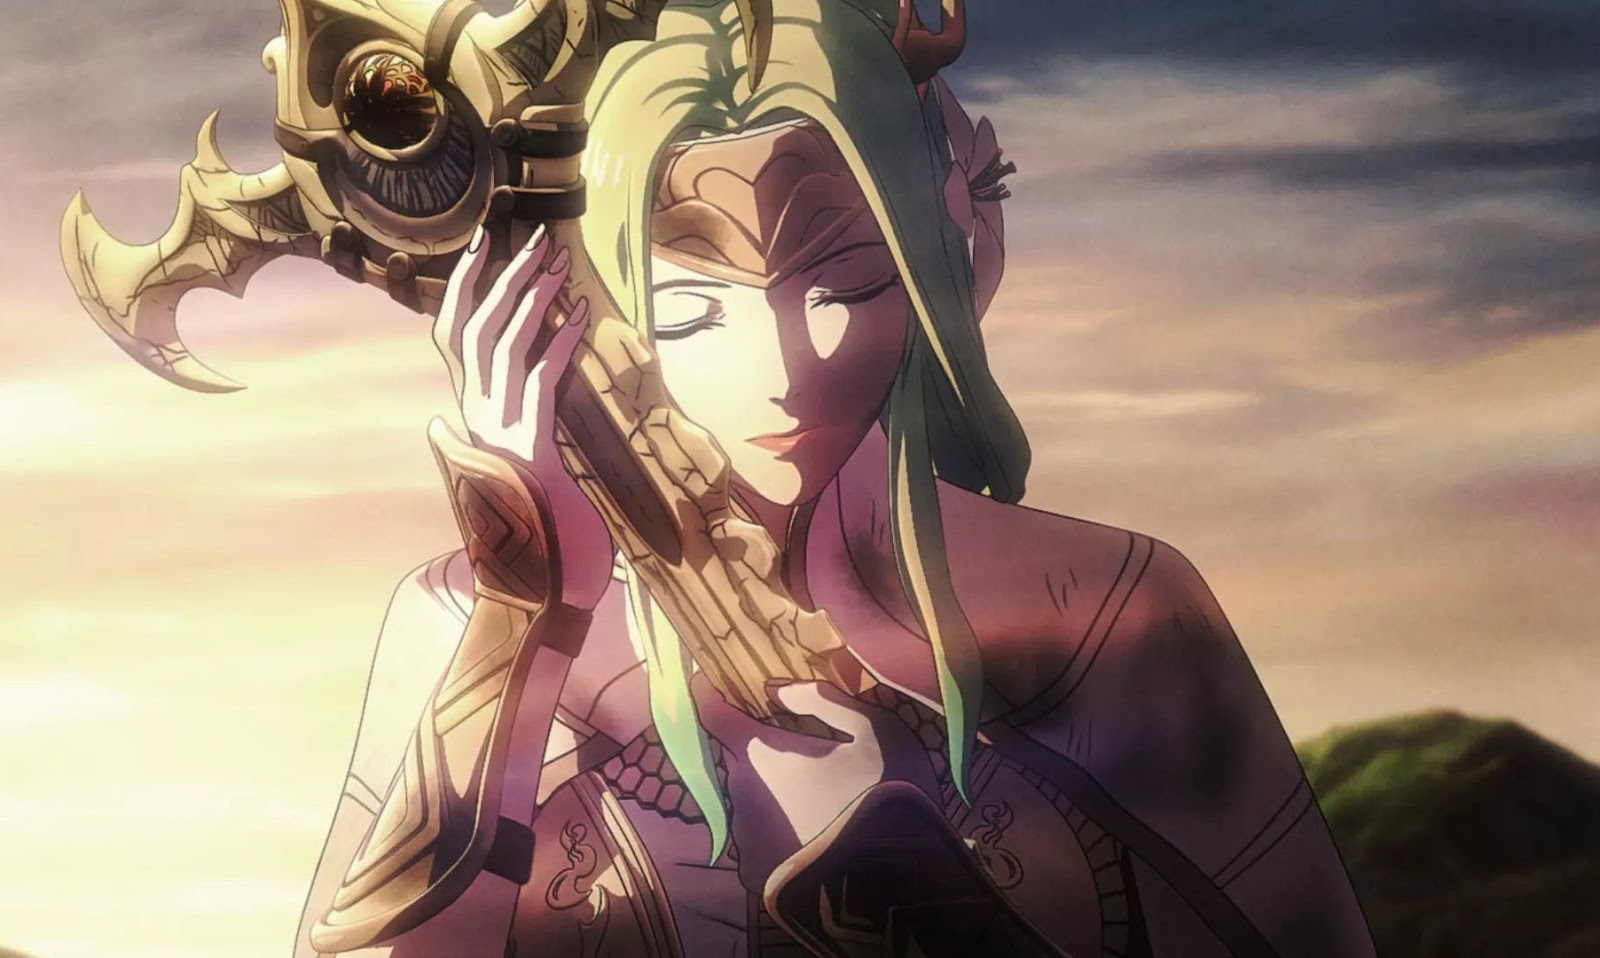 E3 2018: Fire Emblem: Three Houses switches up the series